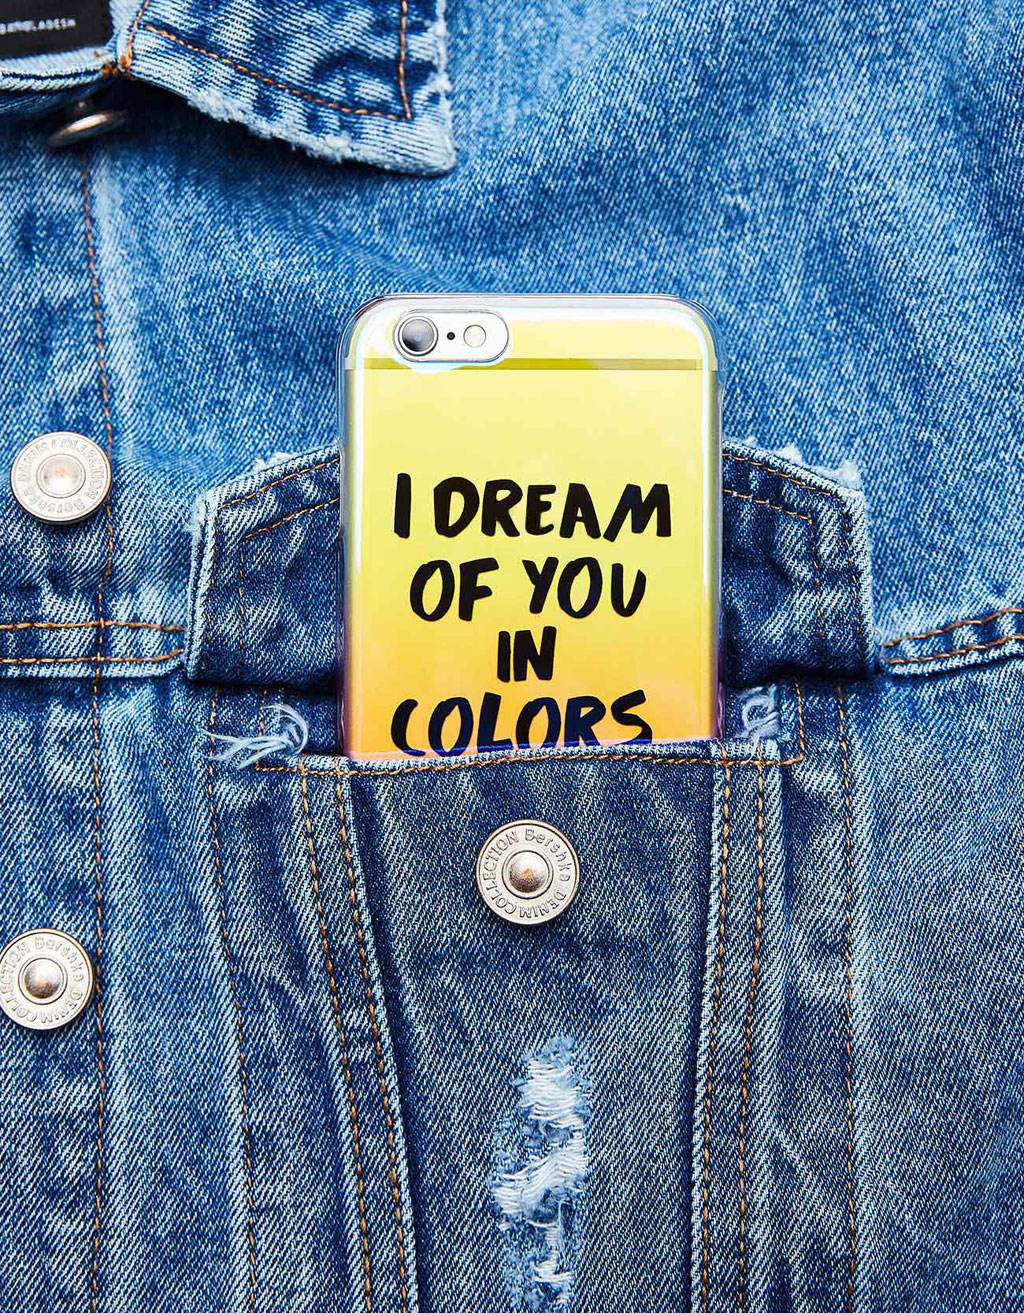 Transparent iridescent ombré iPhone 6/6s case with text